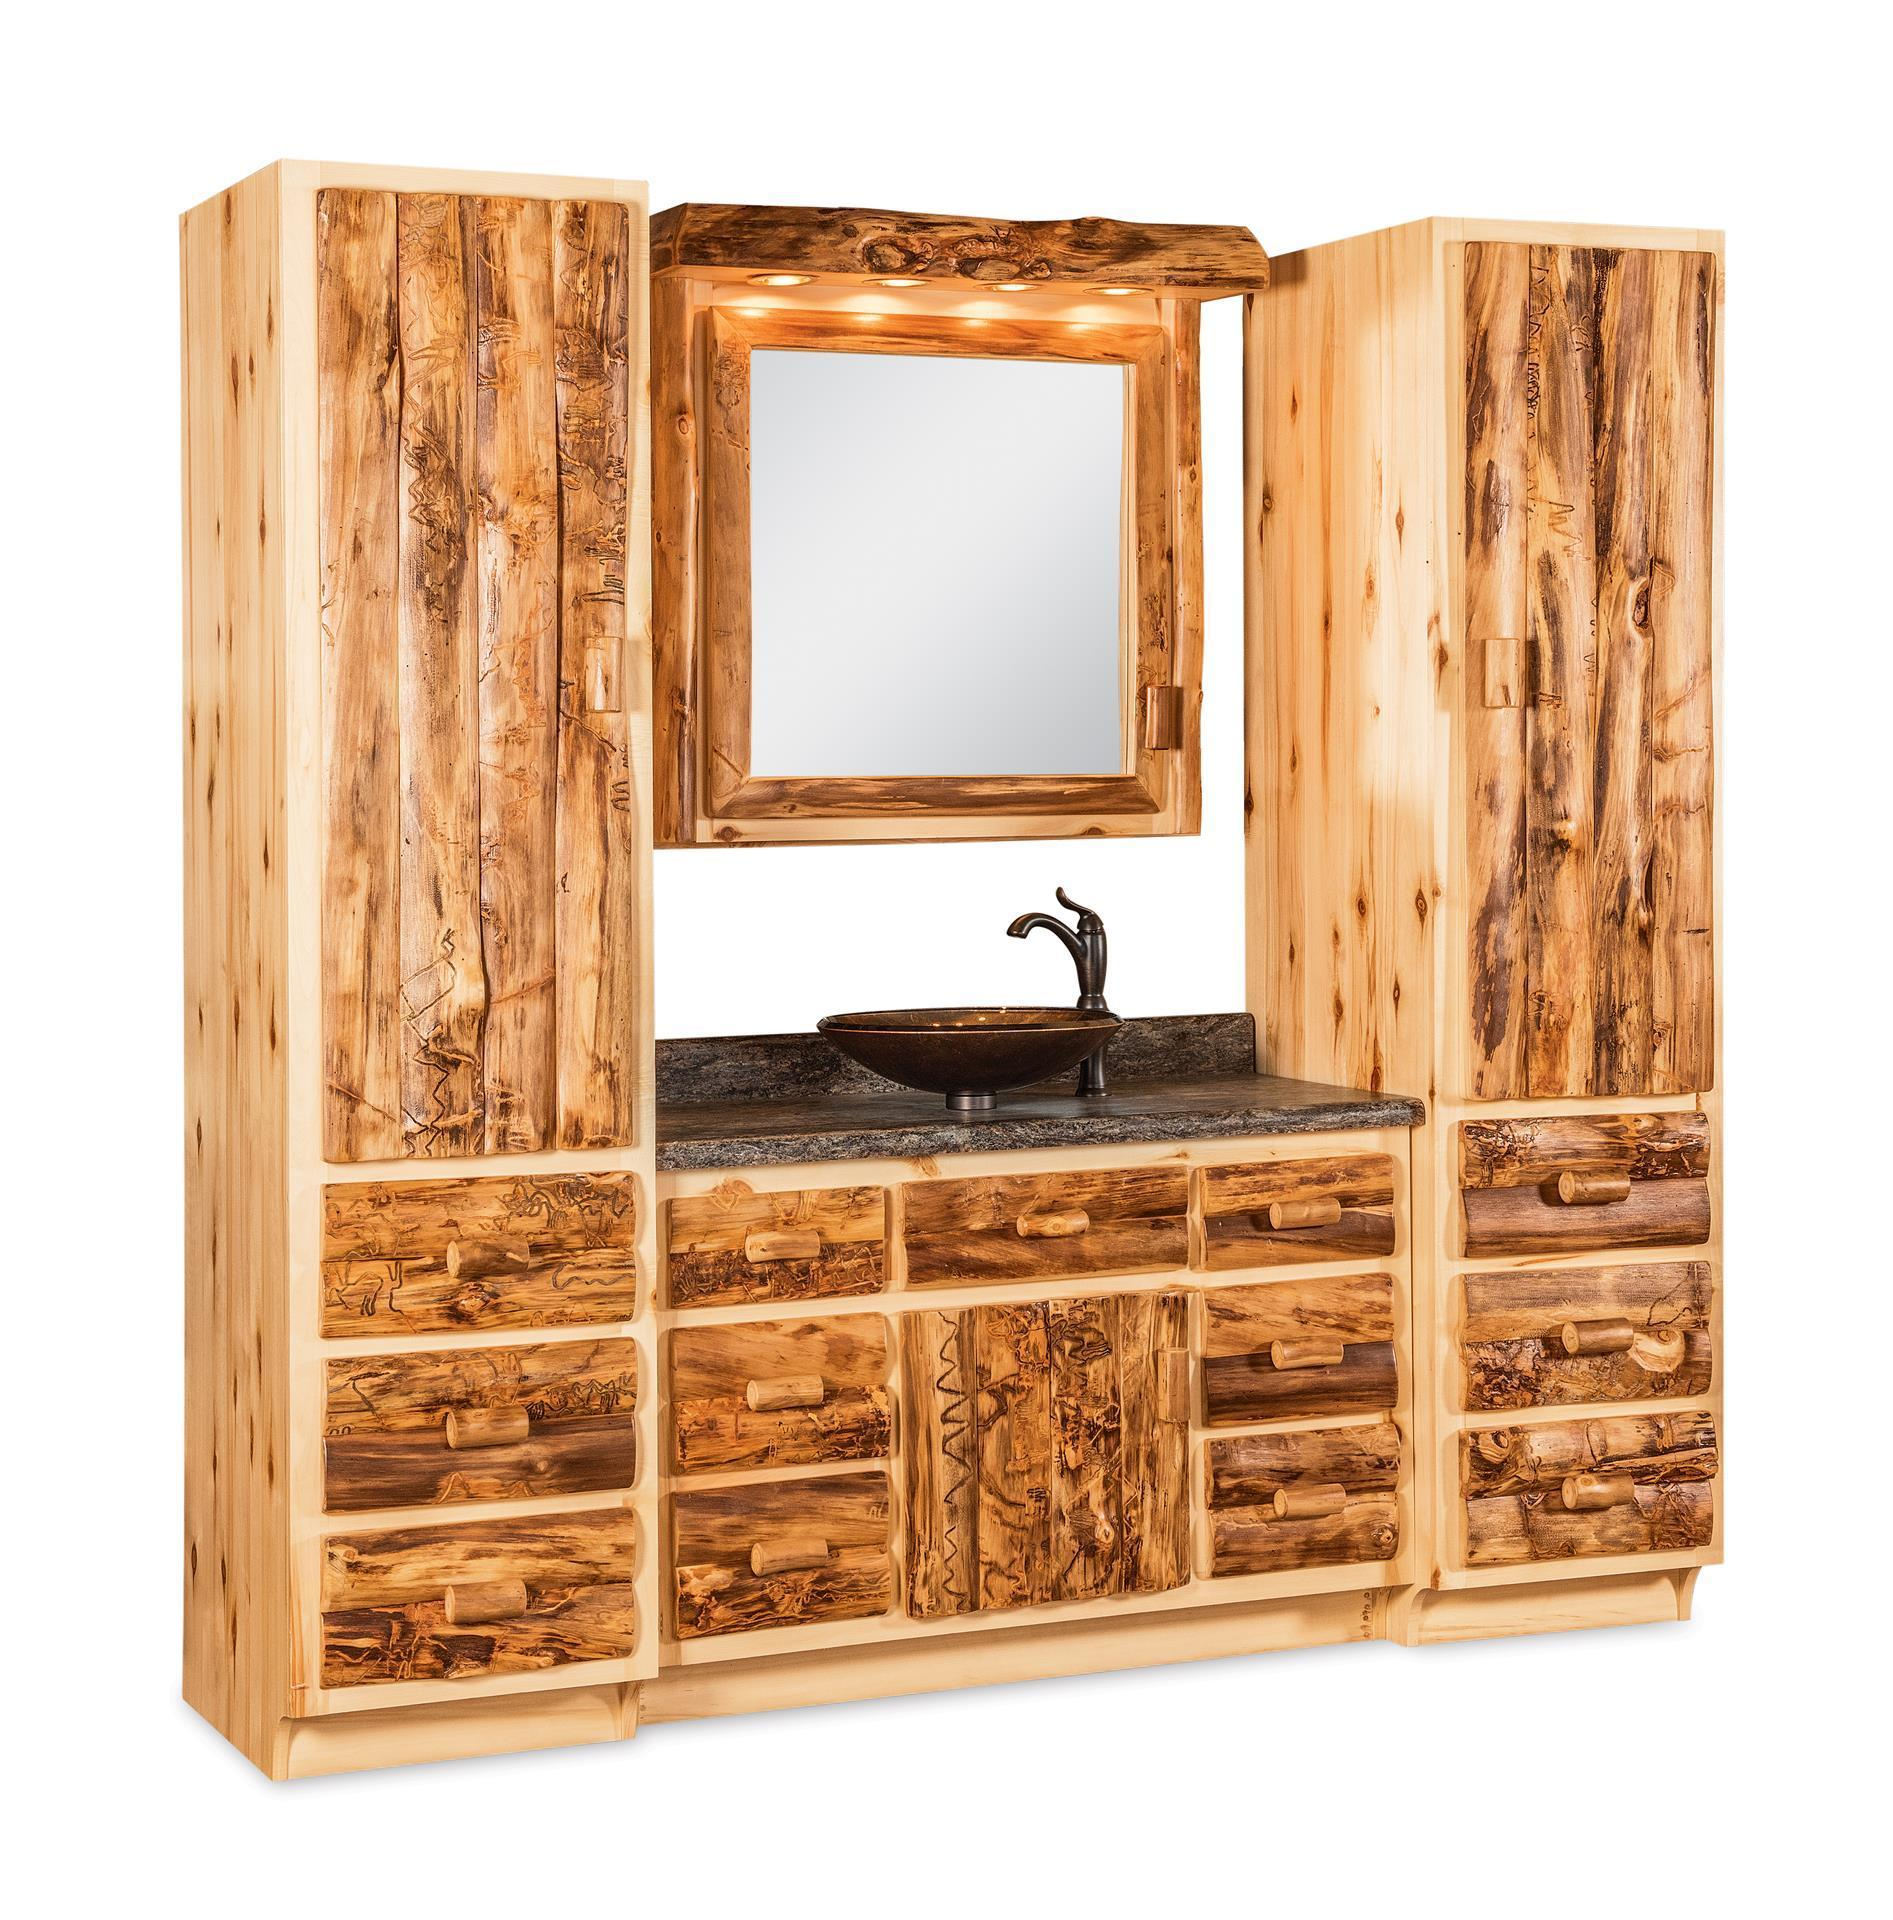 Rustic Log Cabin Bathroom Vanity From Dutchcrafters Amish Furniture